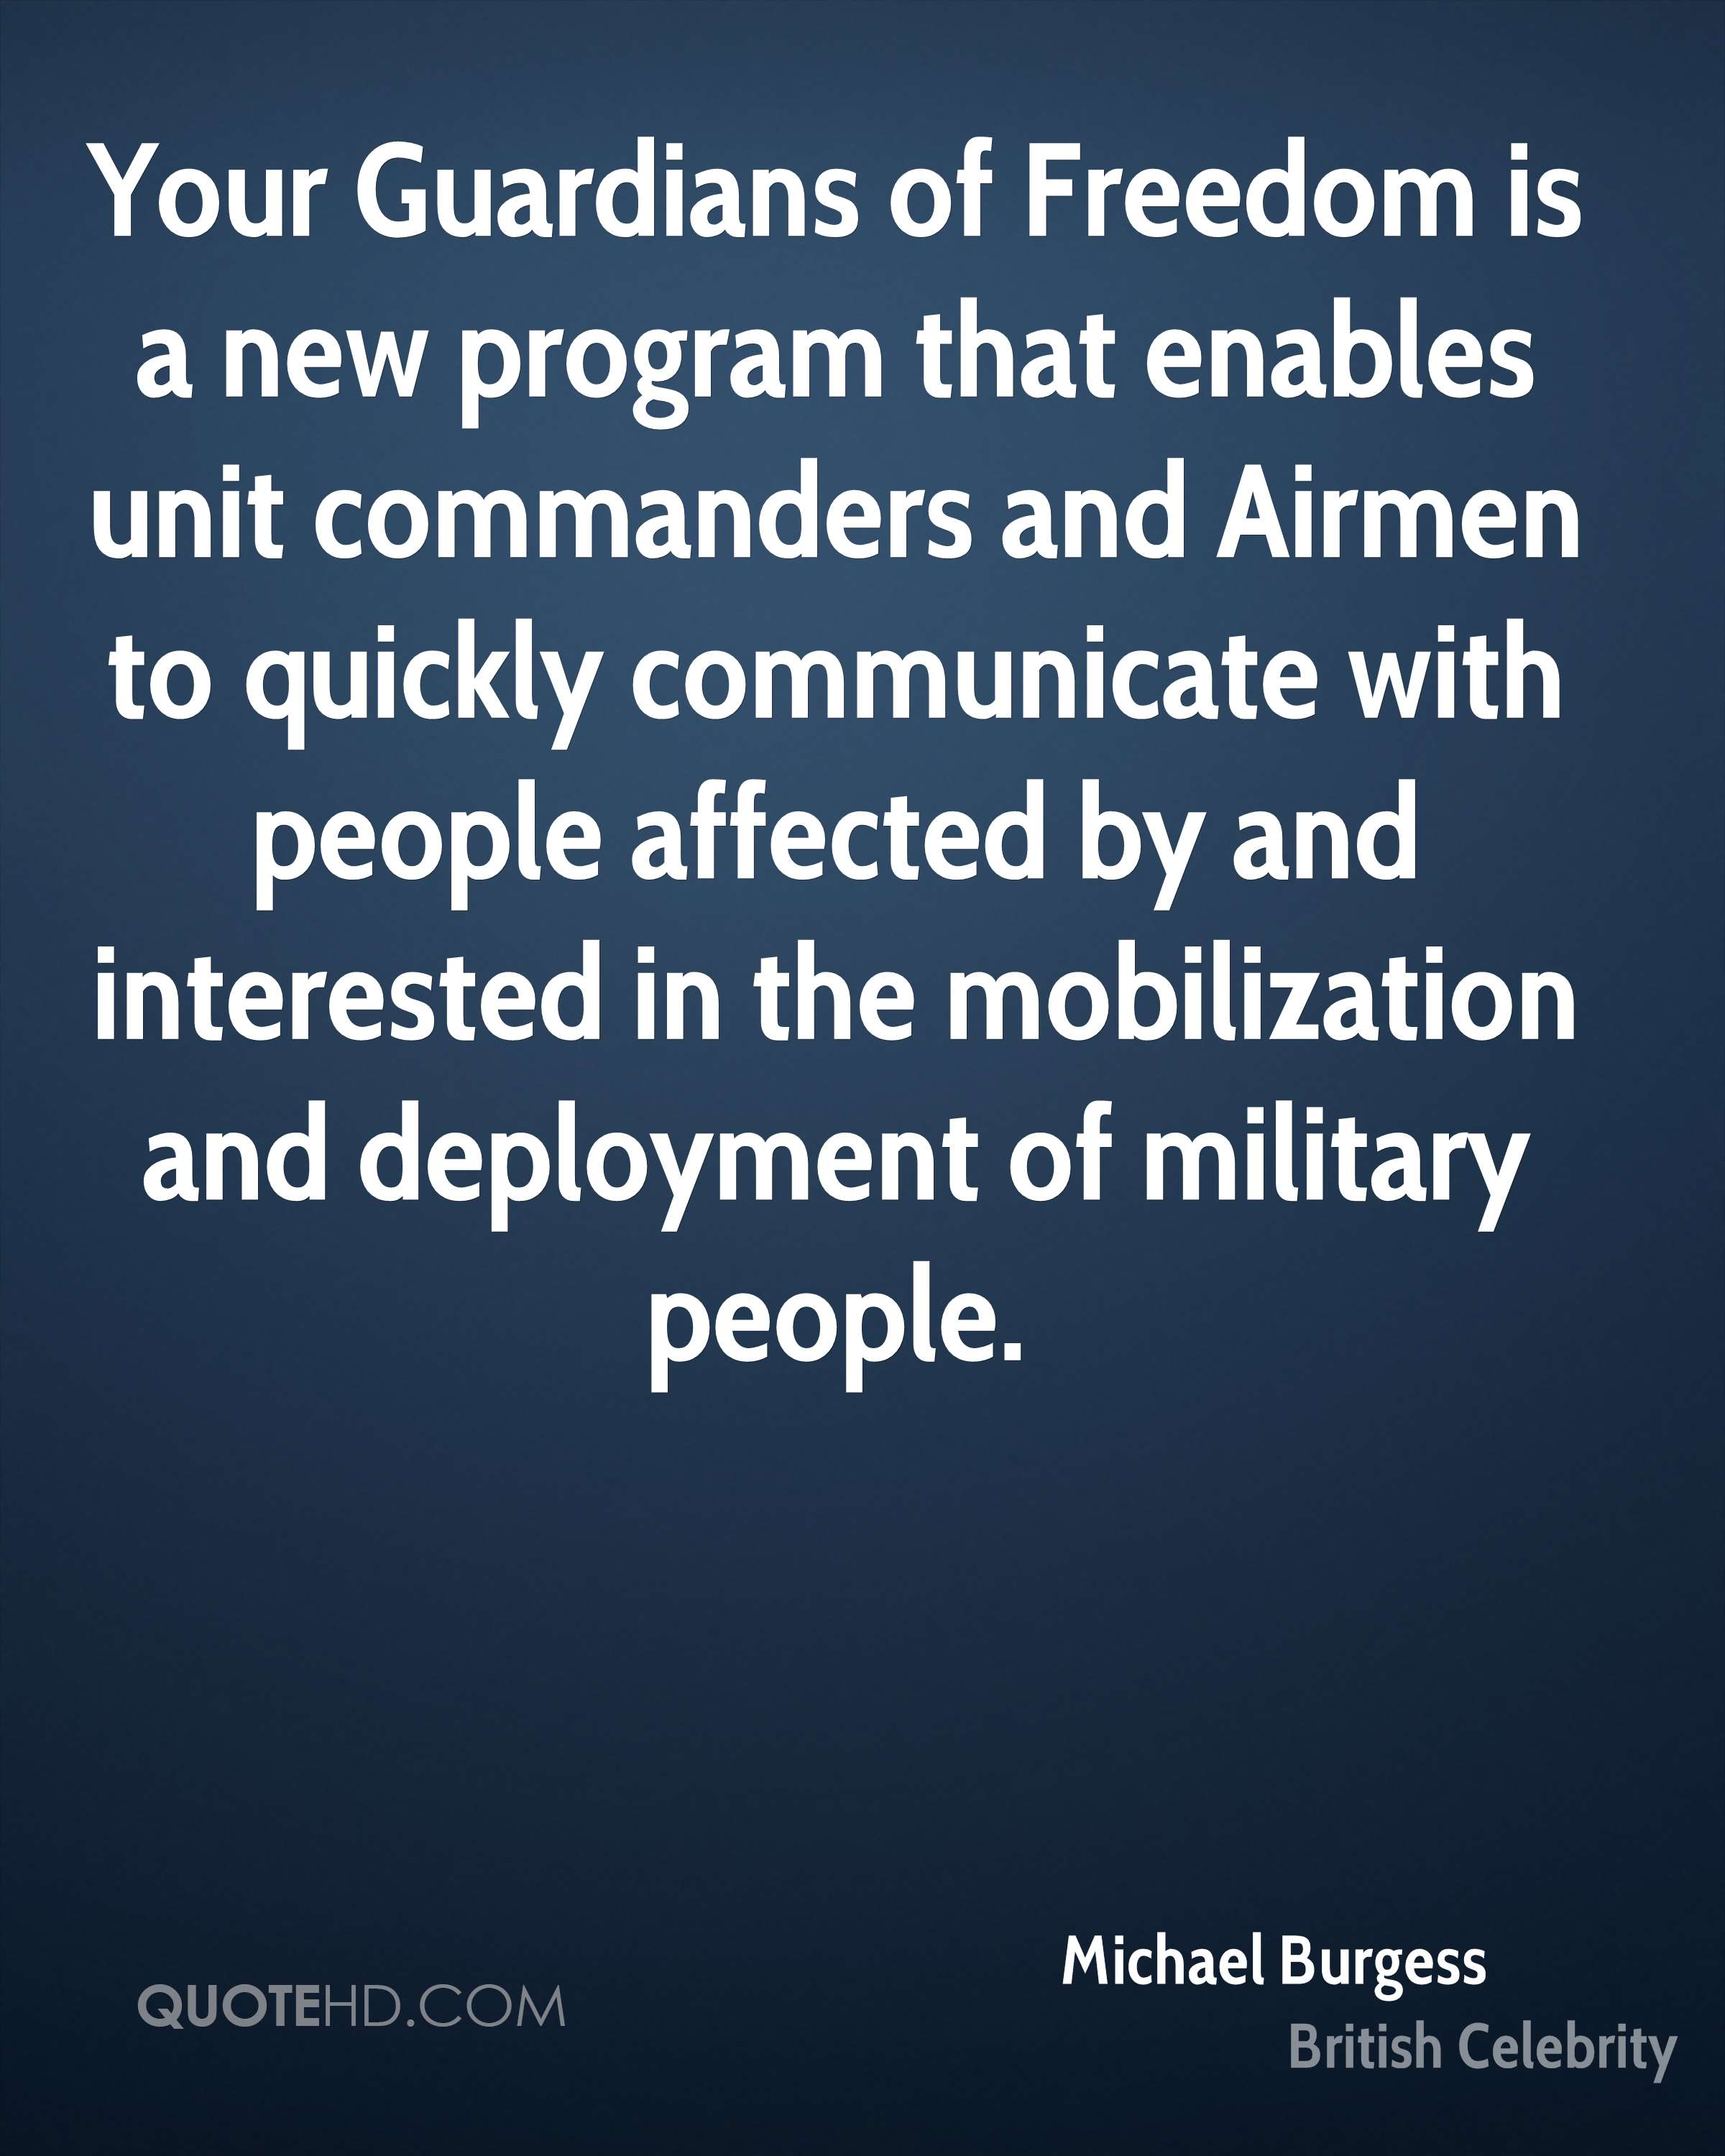 Your Guardians of Freedom is a new program that enables unit commanders and Airmen to quickly communicate with people affected by and interested in the mobilization and deployment of military people.